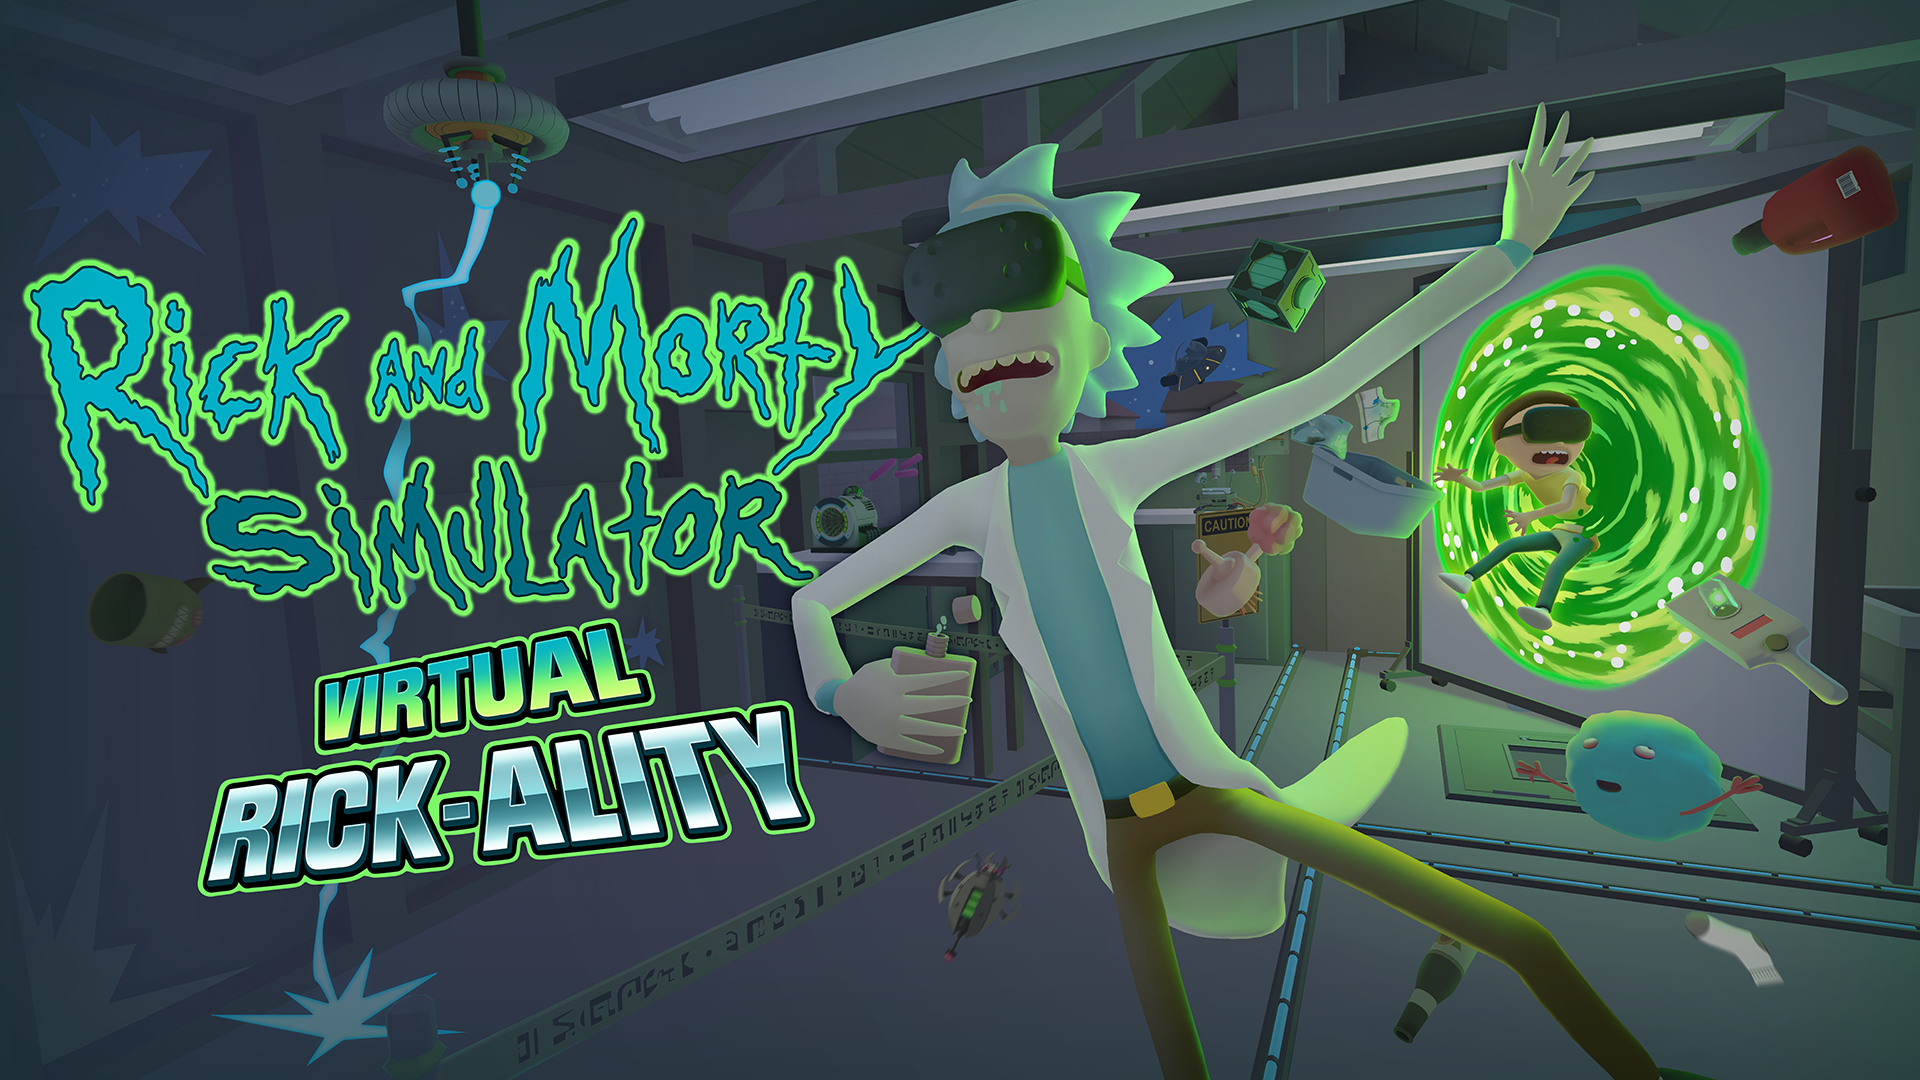 Watch the stunning first trailer for the Rick and Morty VR game